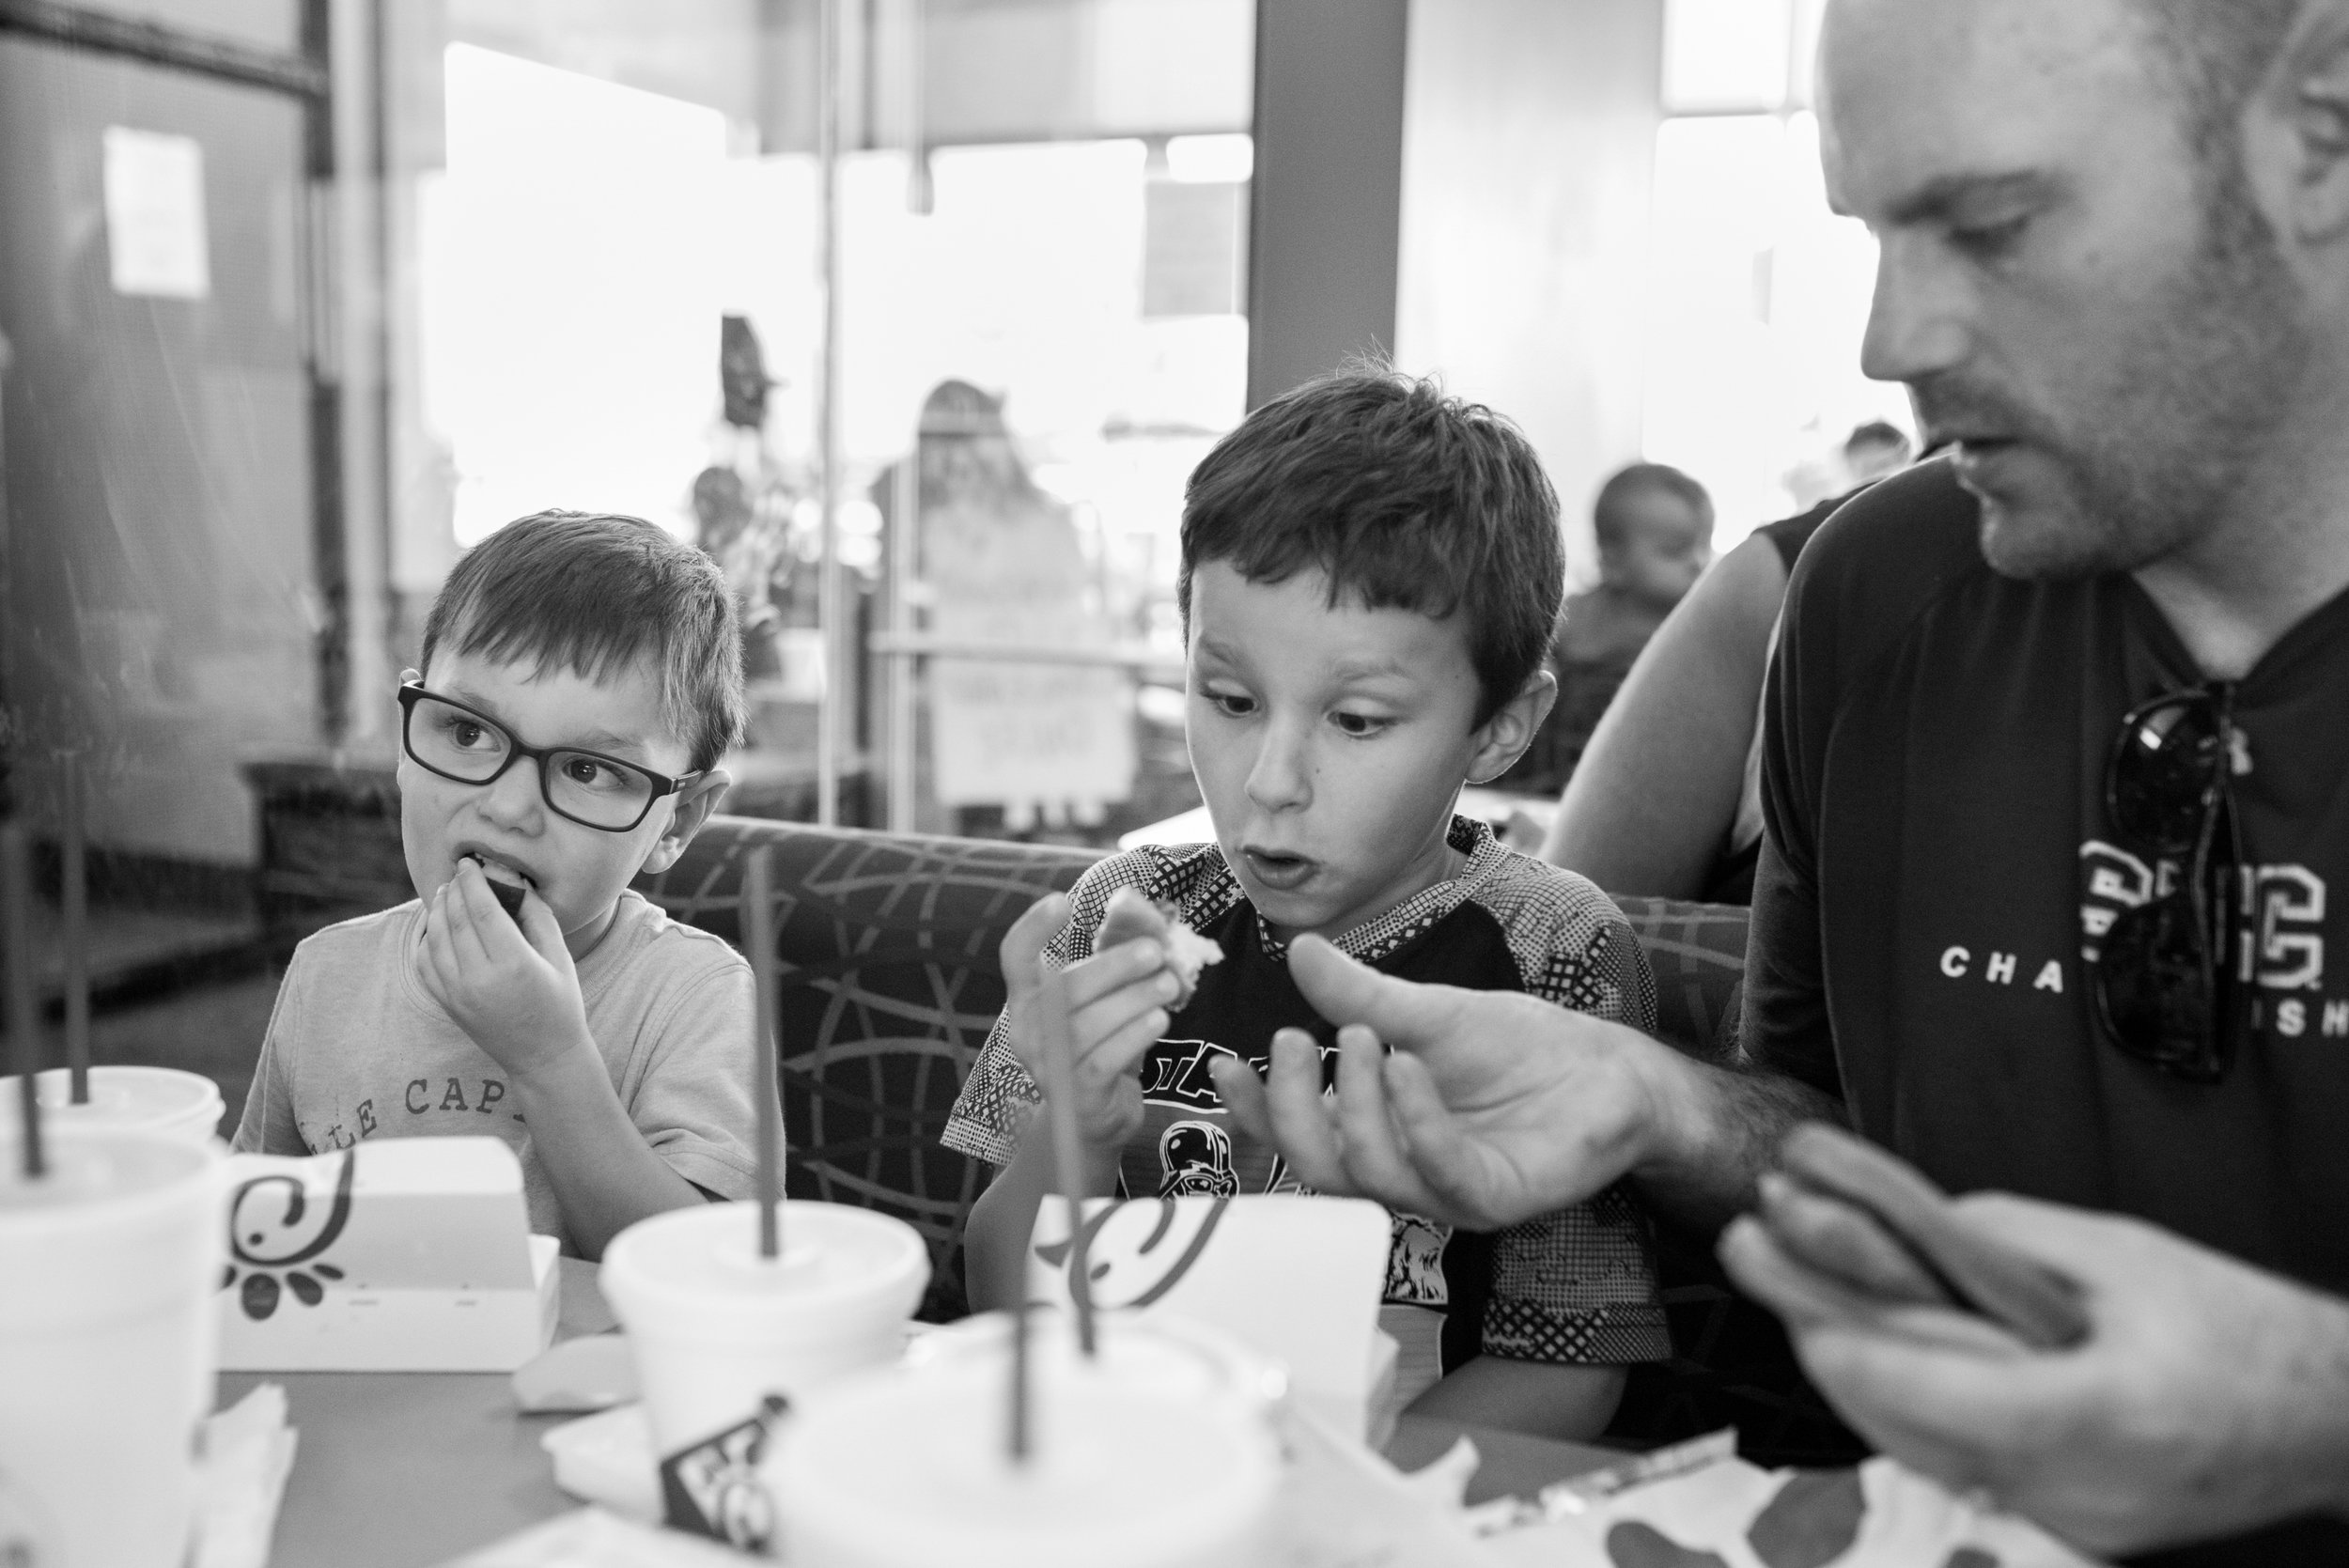 Dad handing son food at table at Chick-Fil-A while other son is eating